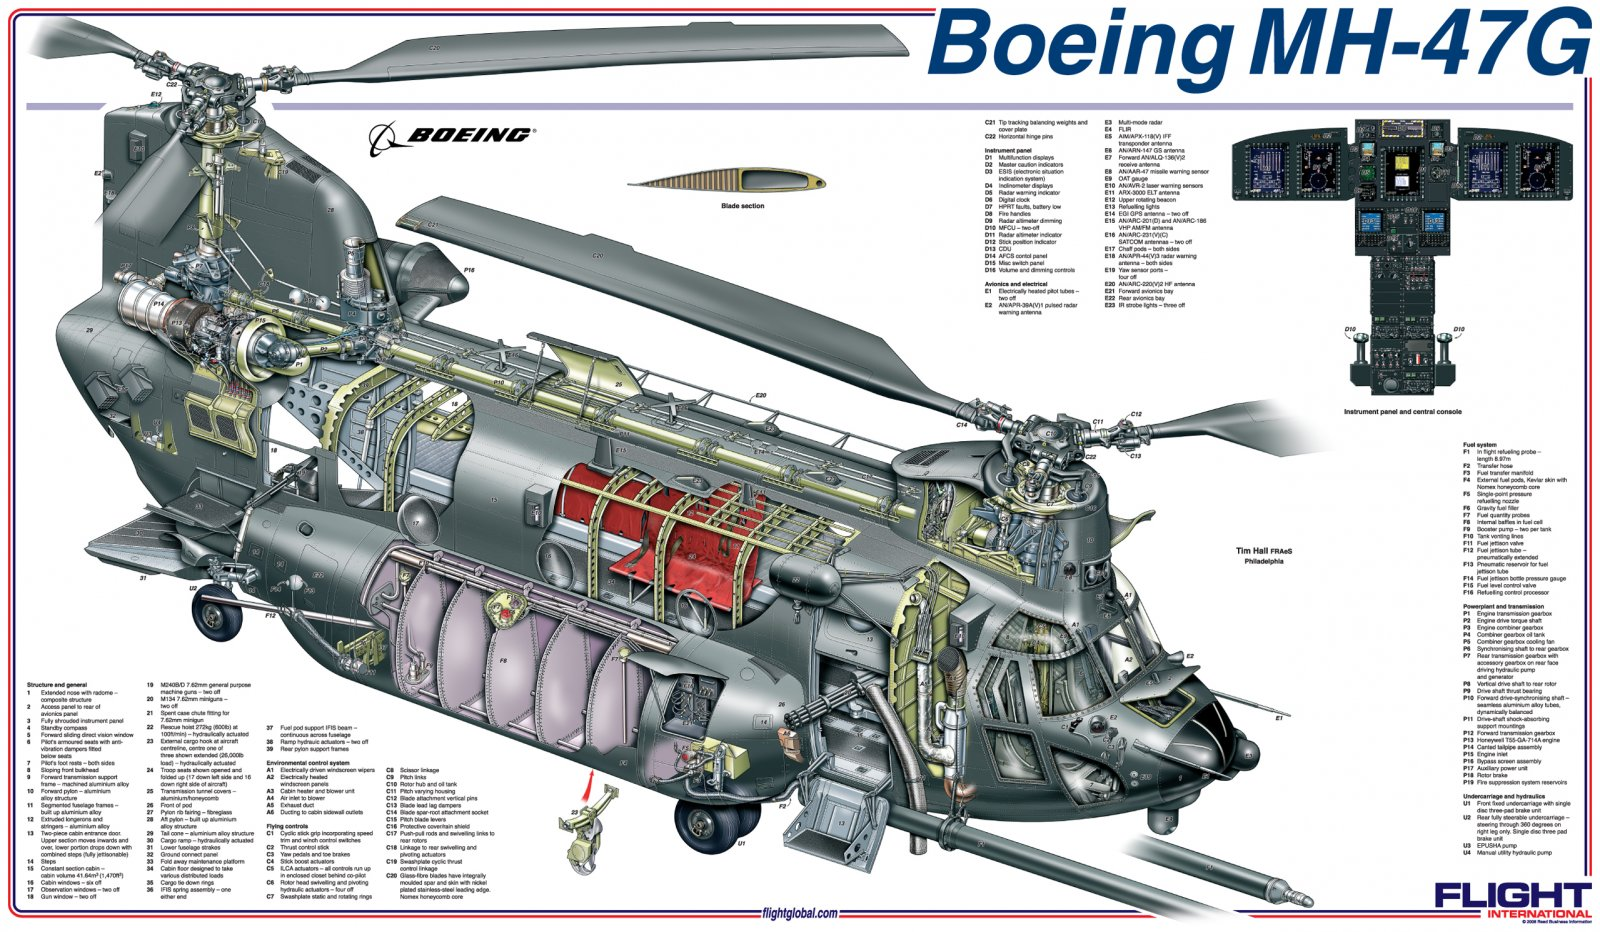 Boeing MH-47G poster small.jpg